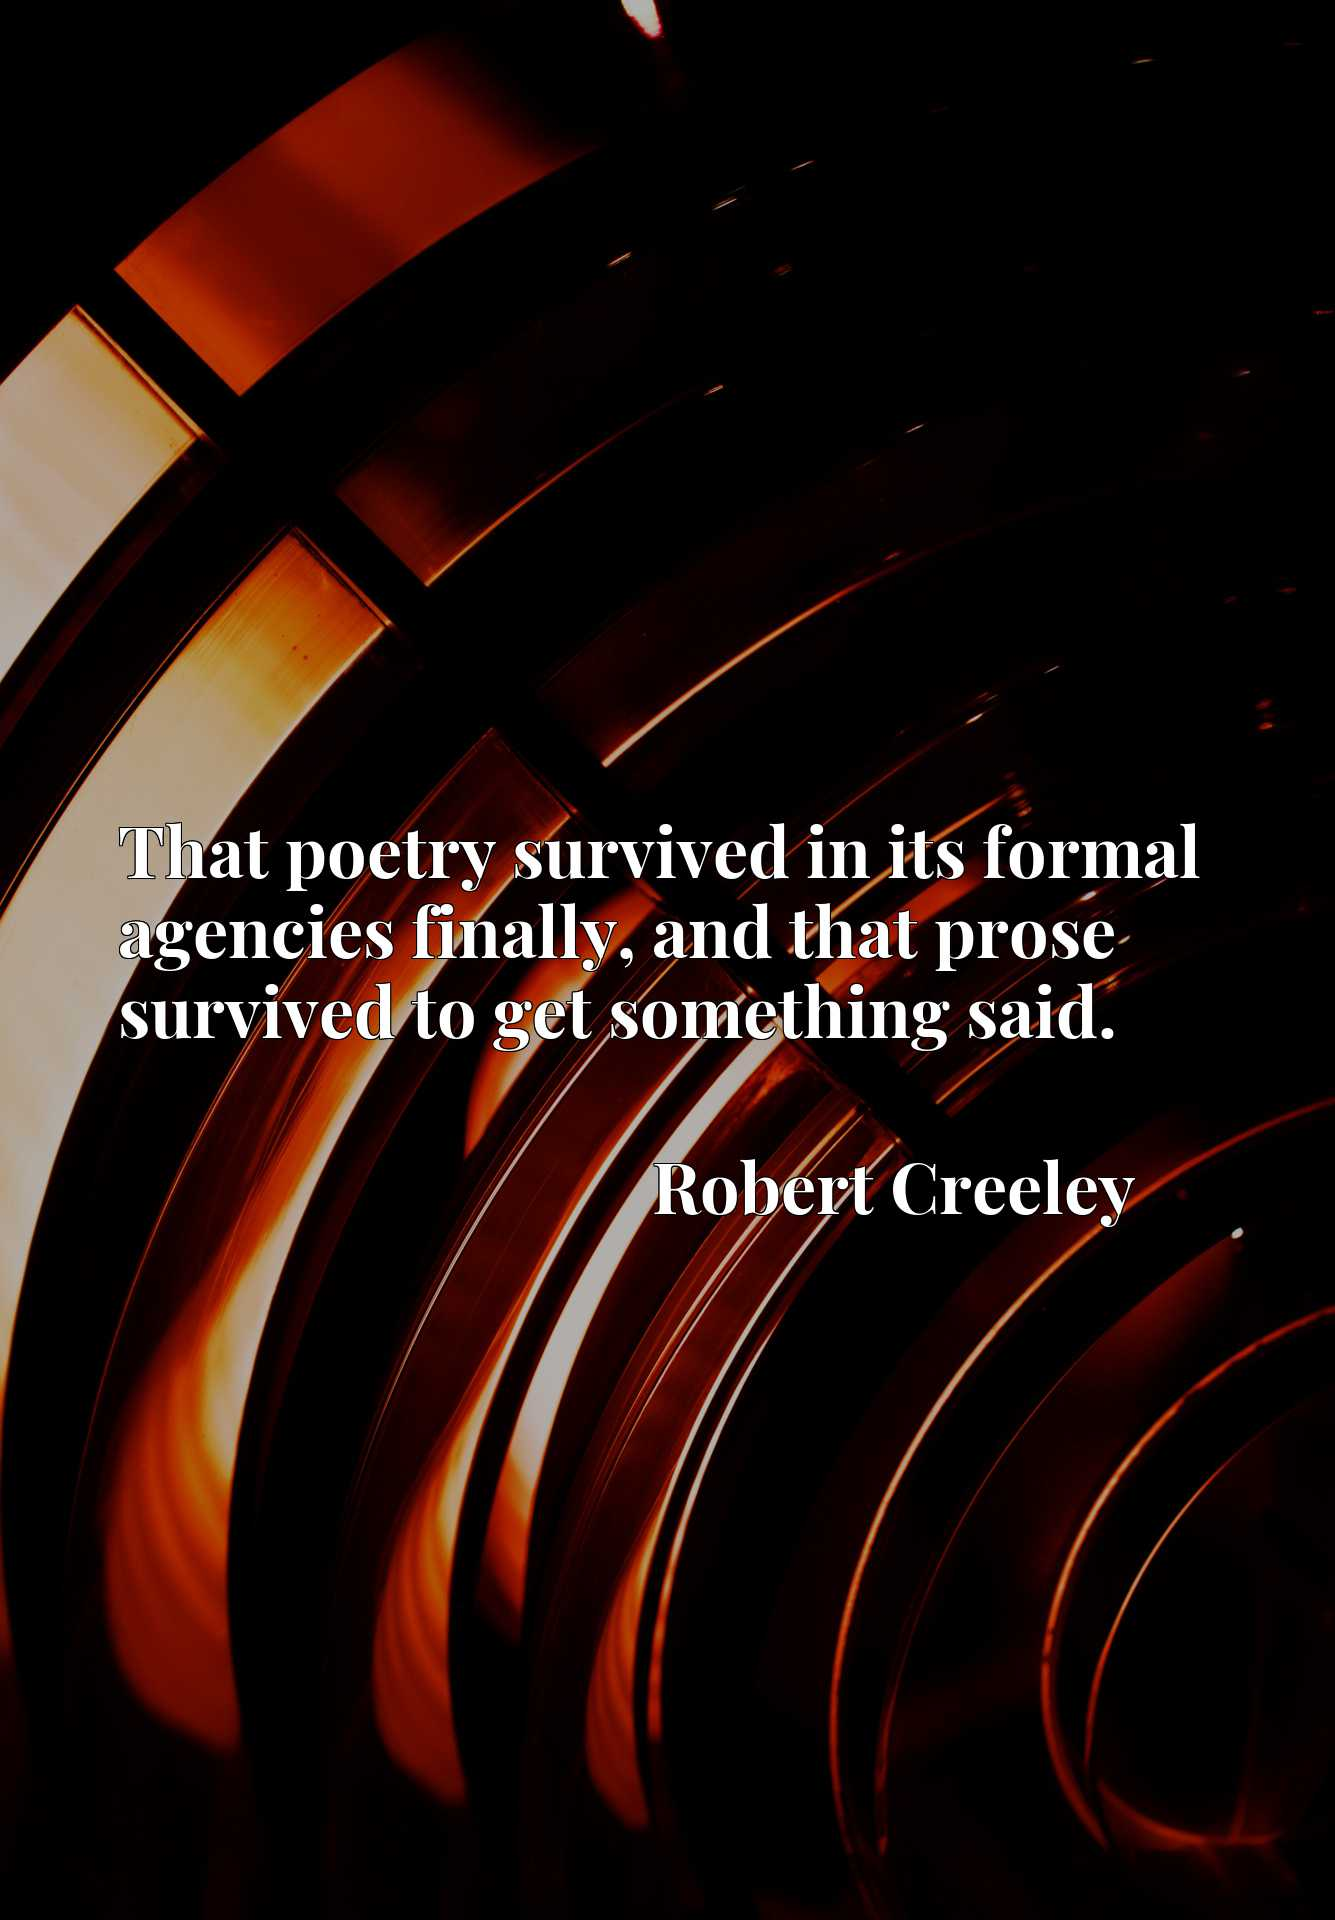 That poetry survived in its formal agencies finally, and that prose survived to get something said.